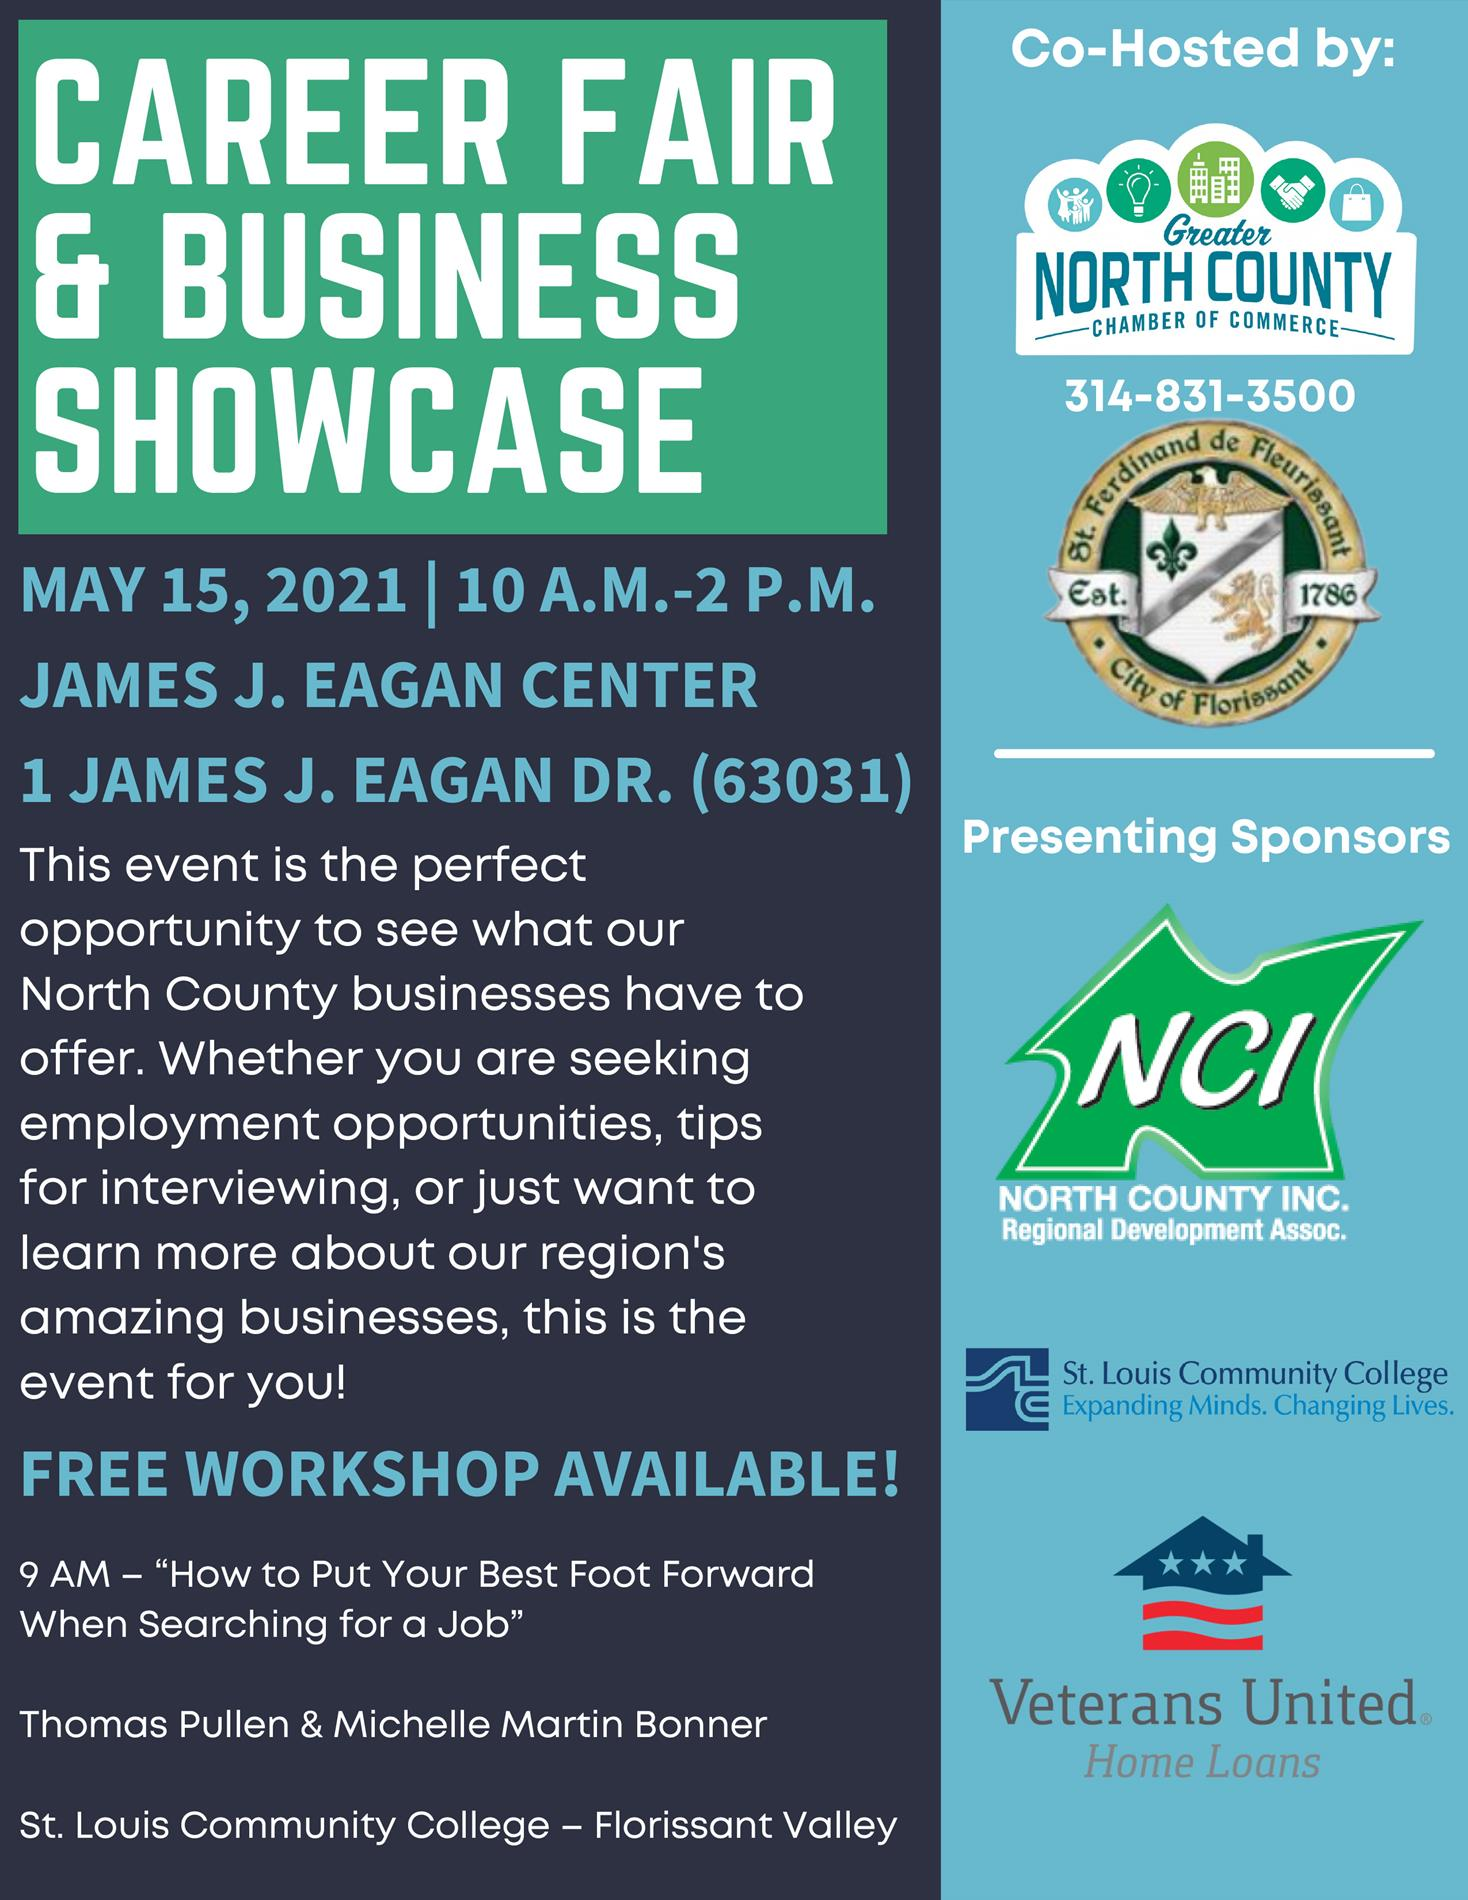 Career Fair & Business Showcase